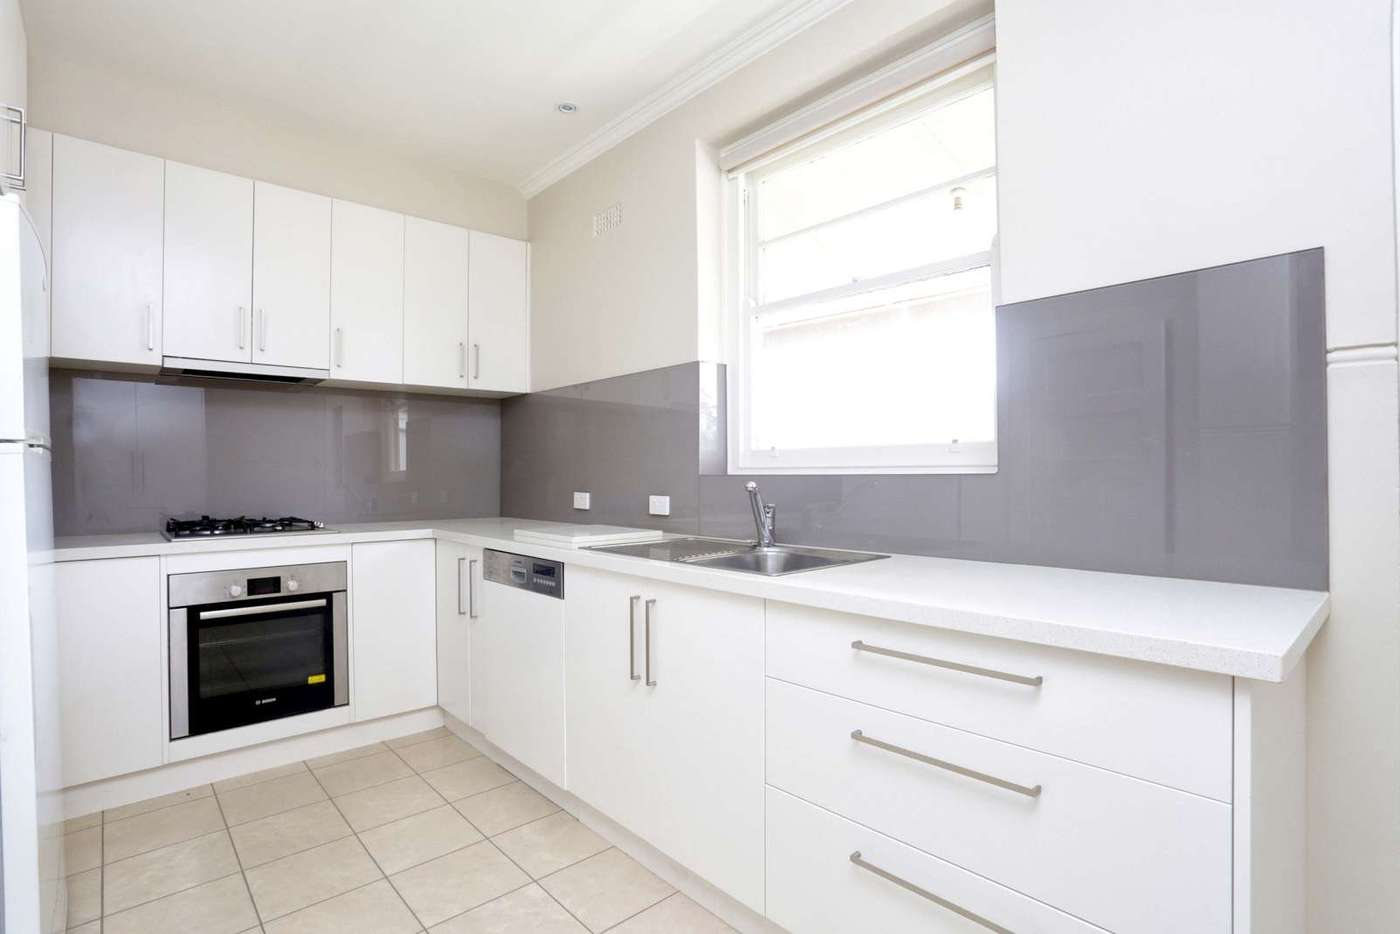 Main view of Homely apartment listing, 4/123 Ruskin Street, Elwood VIC 3184